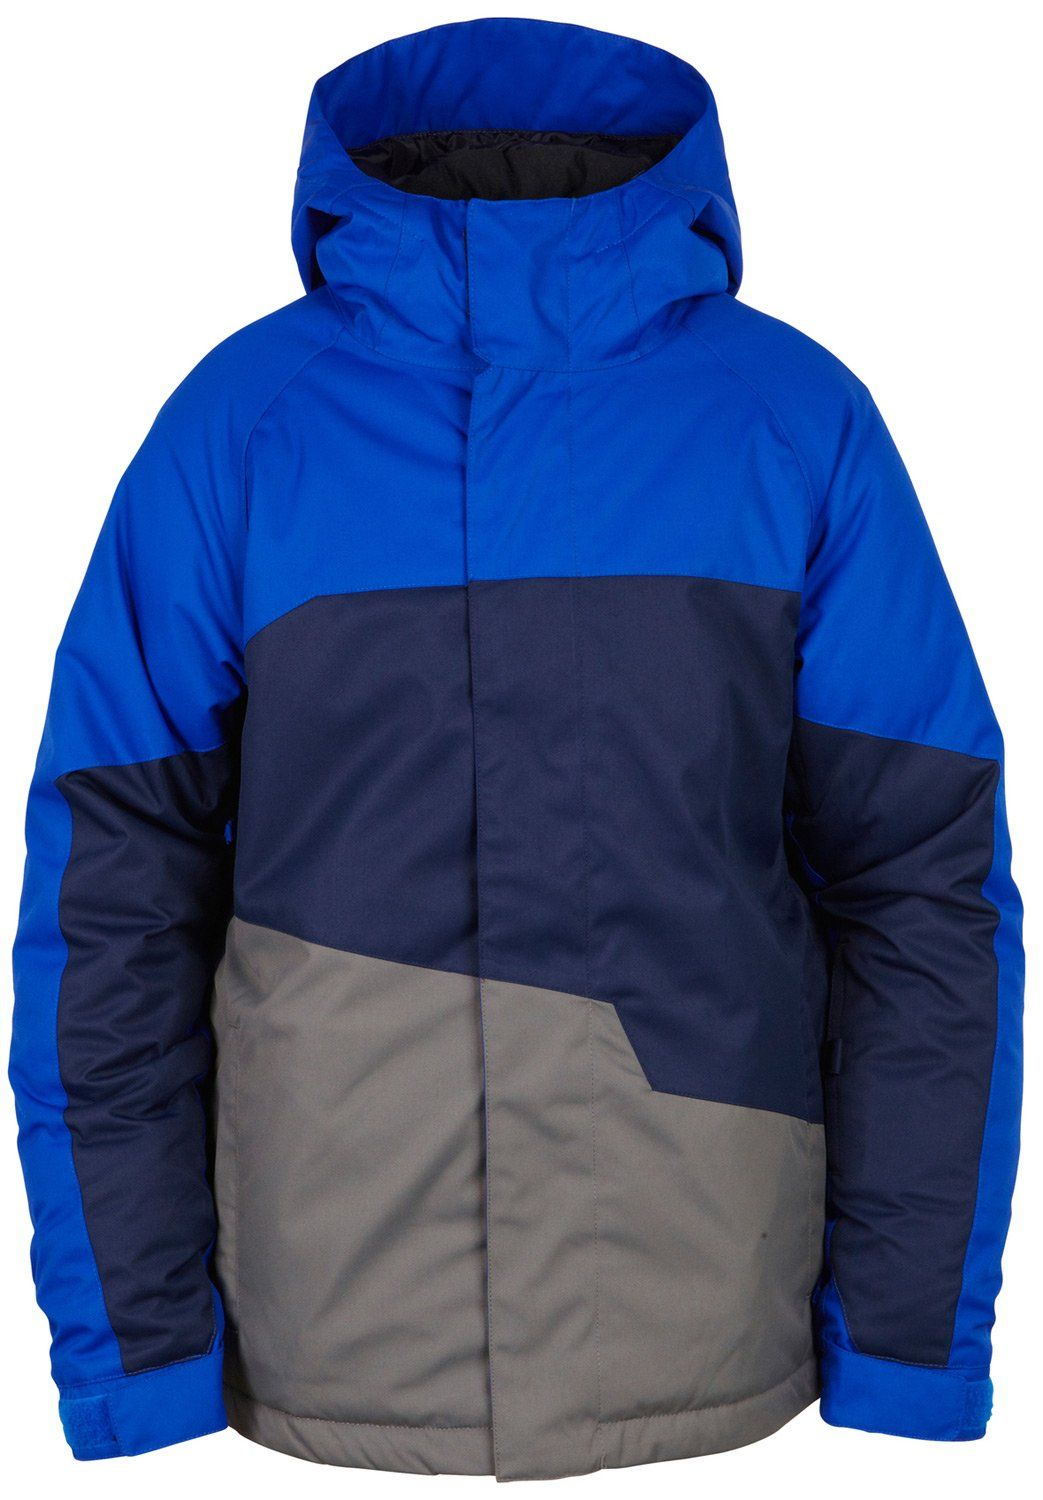 880ca0686ee5 686 - 686 Grid Insulated Snow Jacket - Blue. Boy Snow Jackets ...